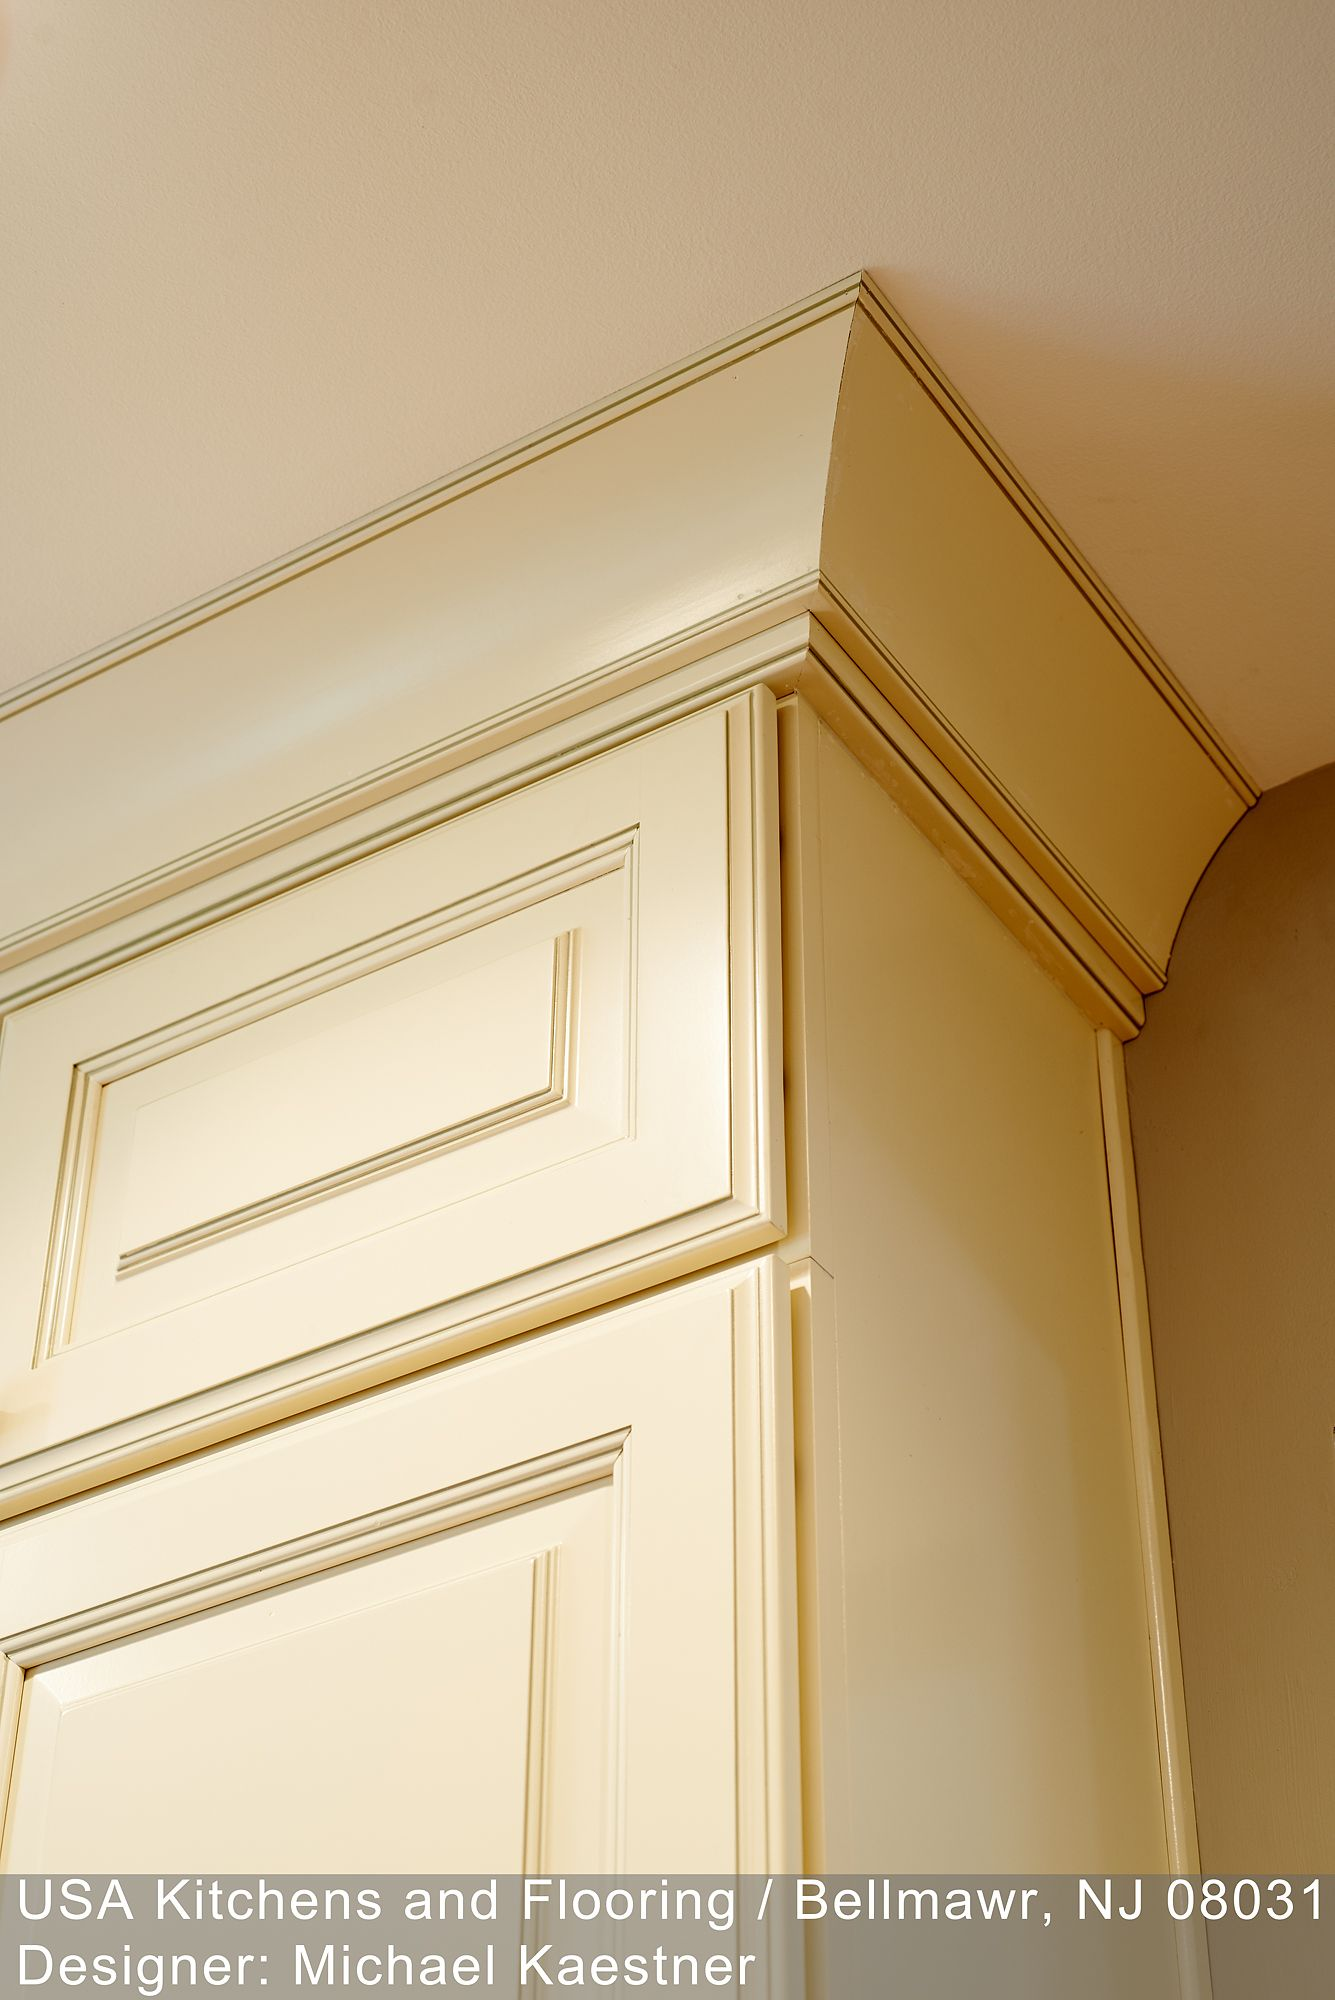 Coved Crown Molding Trim Top Of Stacked Wall Cabinets Moldings And Trim Kitchen Cabinets And Countertops Above Cabinets